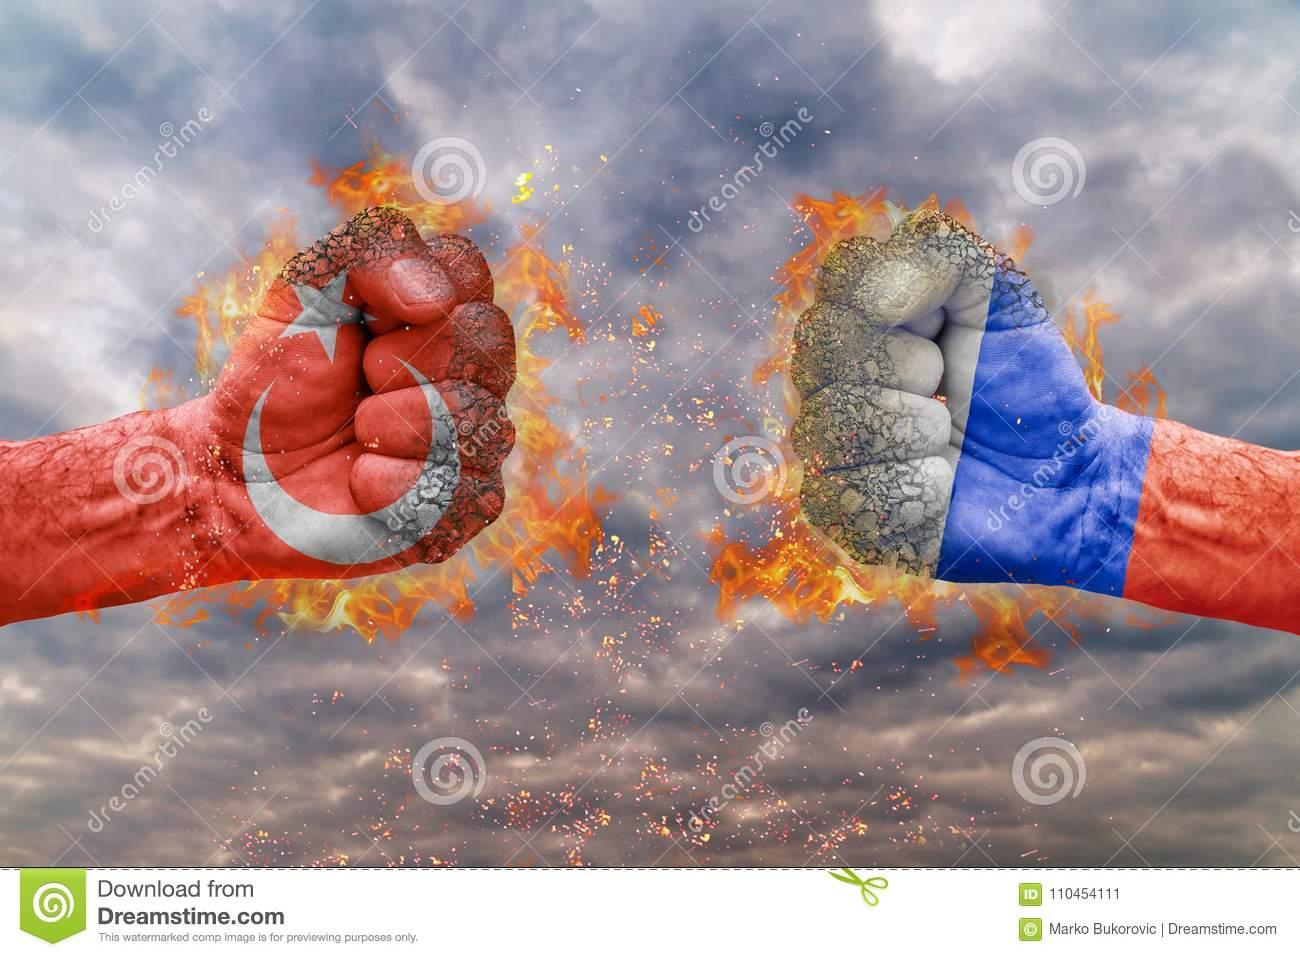 Two fist with the flag of Turkey and Russia faced at each other